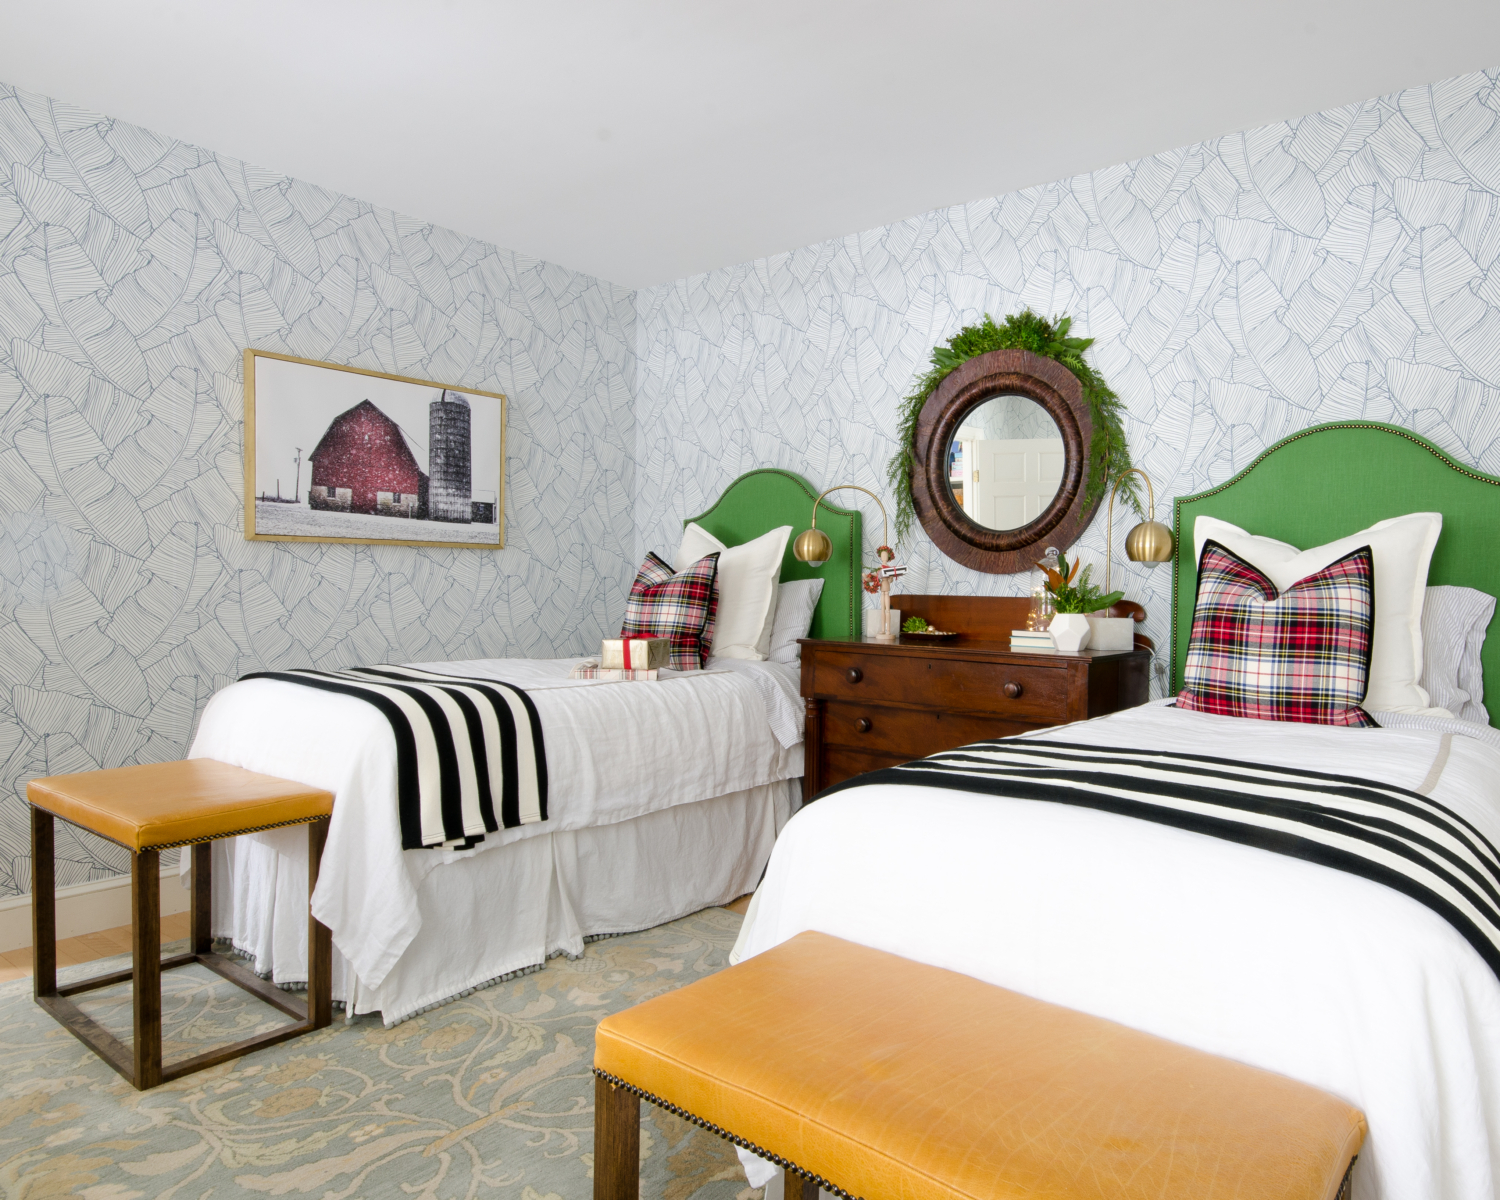 Classic Christmas guest room with custom DIY upholstered headboards, red plaid pillows, fresh greenery, and cute, quirky accents. Perfect way to make Christmas guest feel at home!